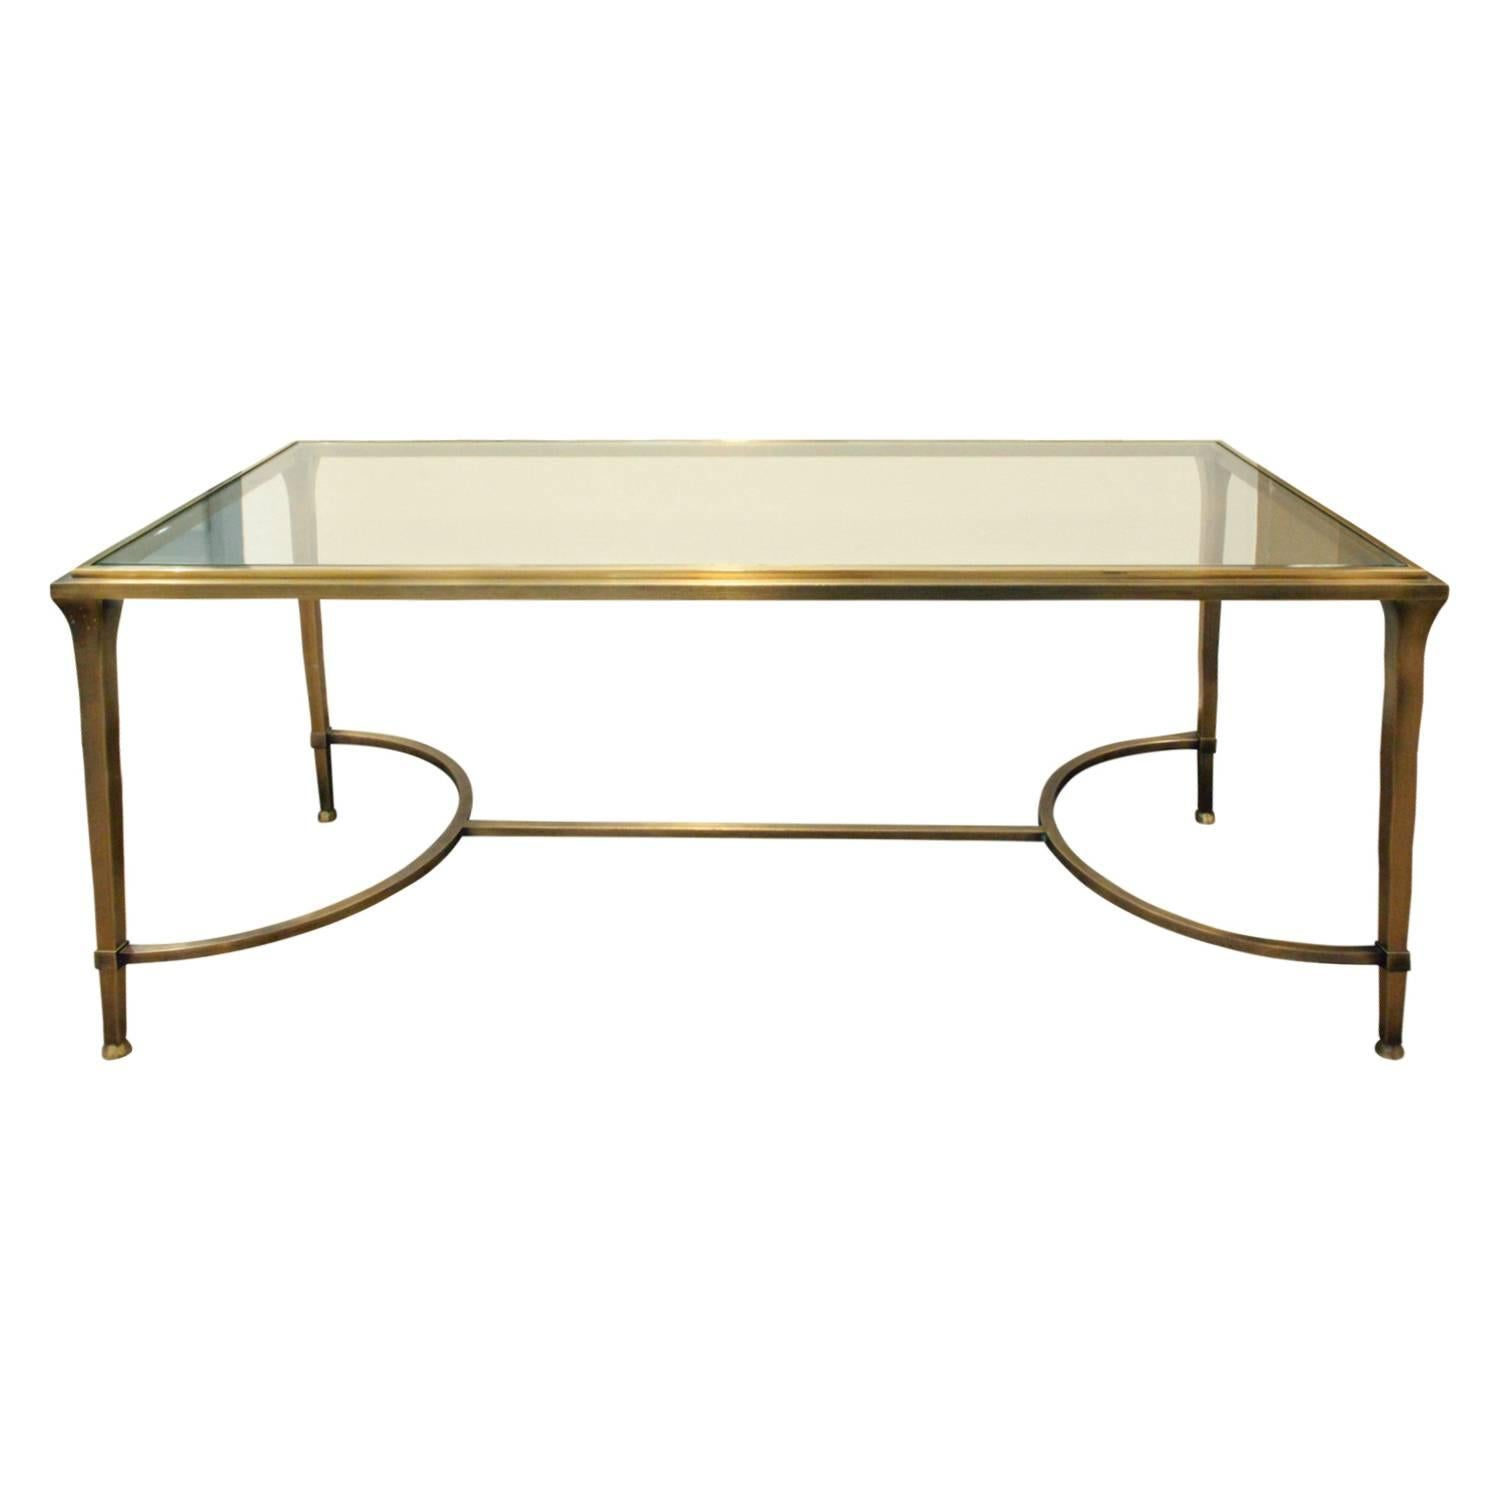 Elegant Bronze Coffee Table With Glass Top, 1960s For Sale